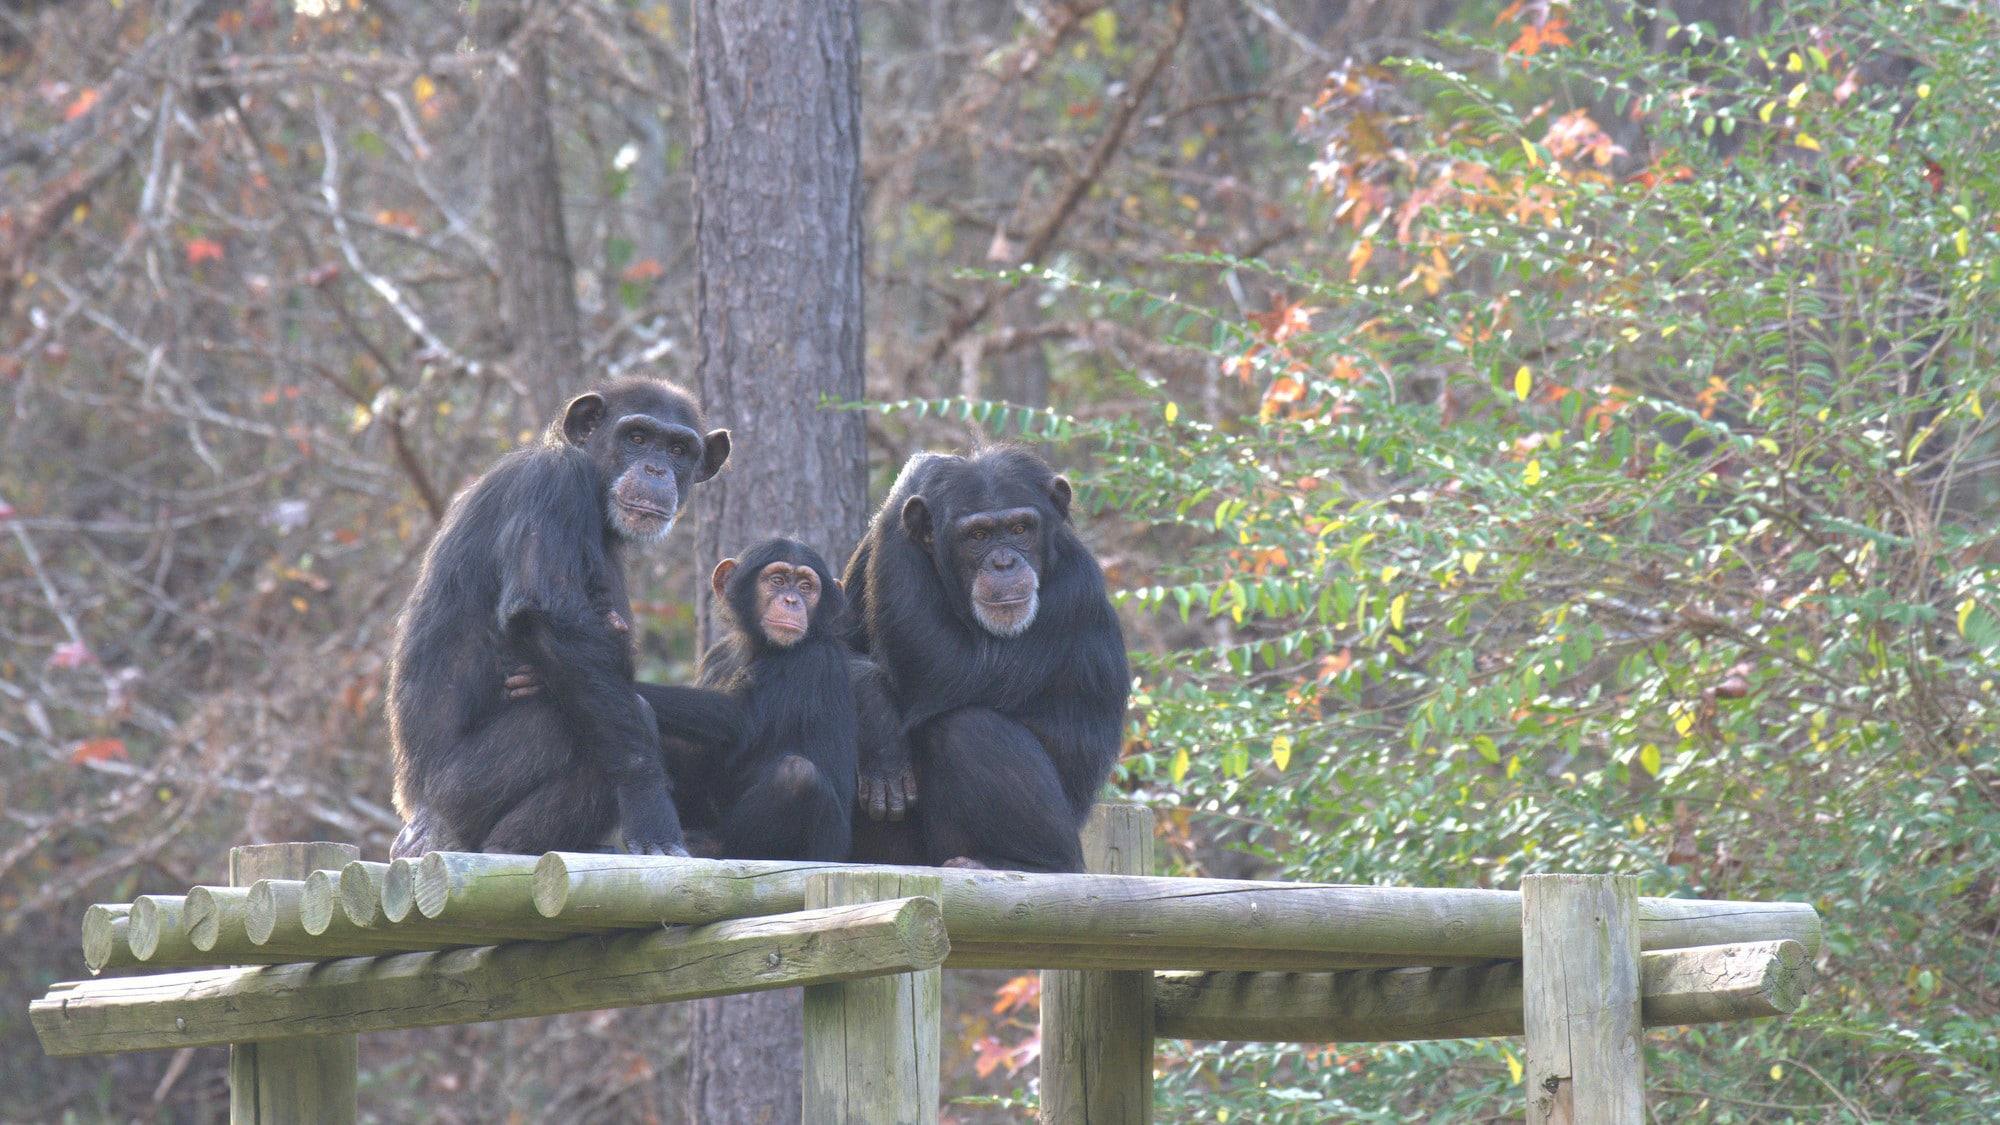 Keithville, Louisiana - Baby Carlee with her Mum Passion, and older sister Arden on a platform in their forest habitat at Chimp Haven. They are in 'Flora's Group'. (National Geographic/Virginia Quinn)